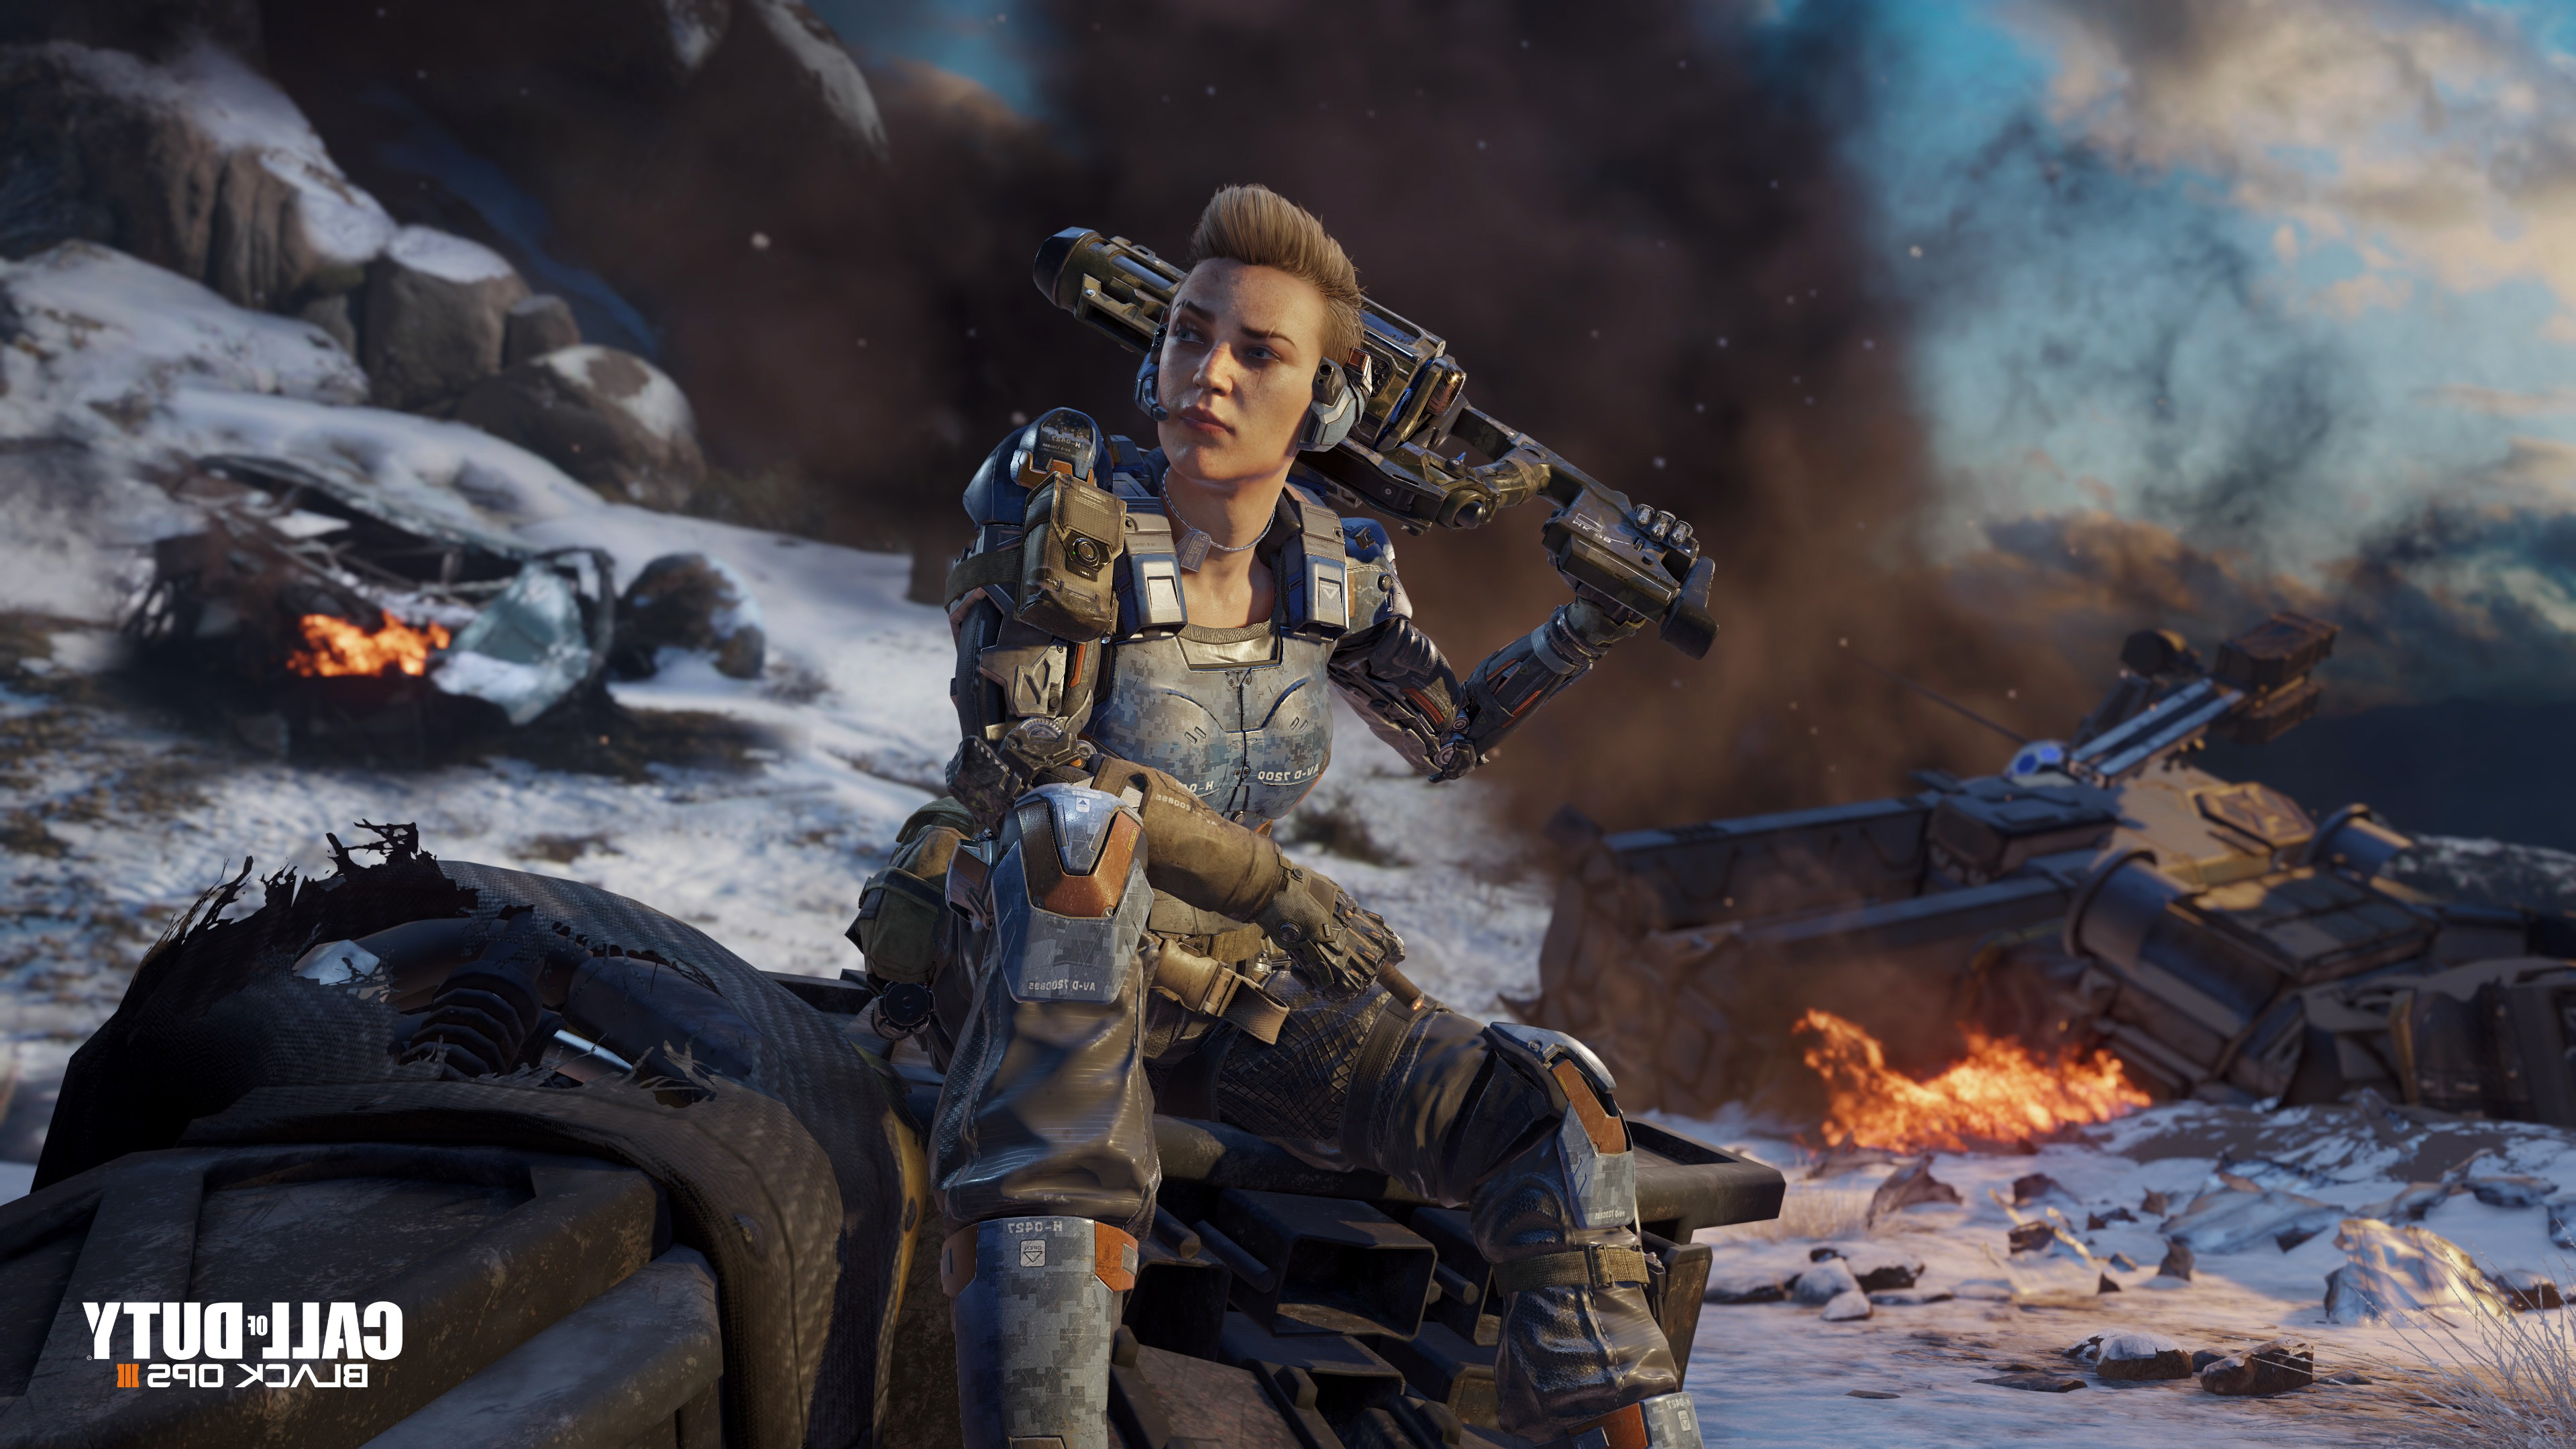 Call Of Duty Black Ops 3 Hd Wallpapers: 2048x1152 Call Of Duty Black Ops 3 Game 2048x1152